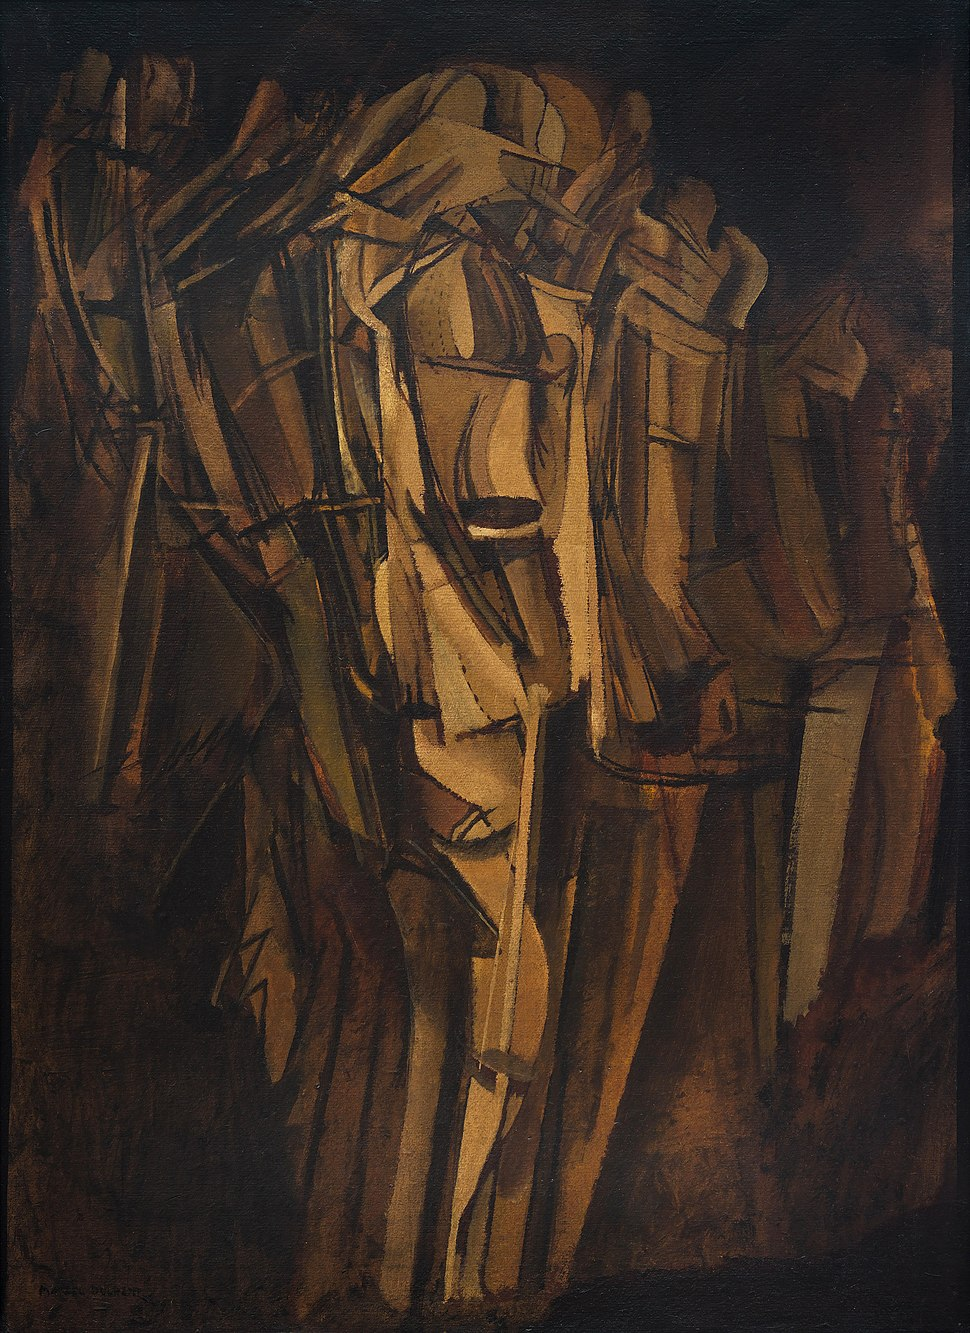 Marcel Duchamp, 1911-12, Nude (Study), Sad Young Man on a Train (Nu -esquisse-, jeune homme triste dans un train), Peggy Guggenheim Collection, Venice